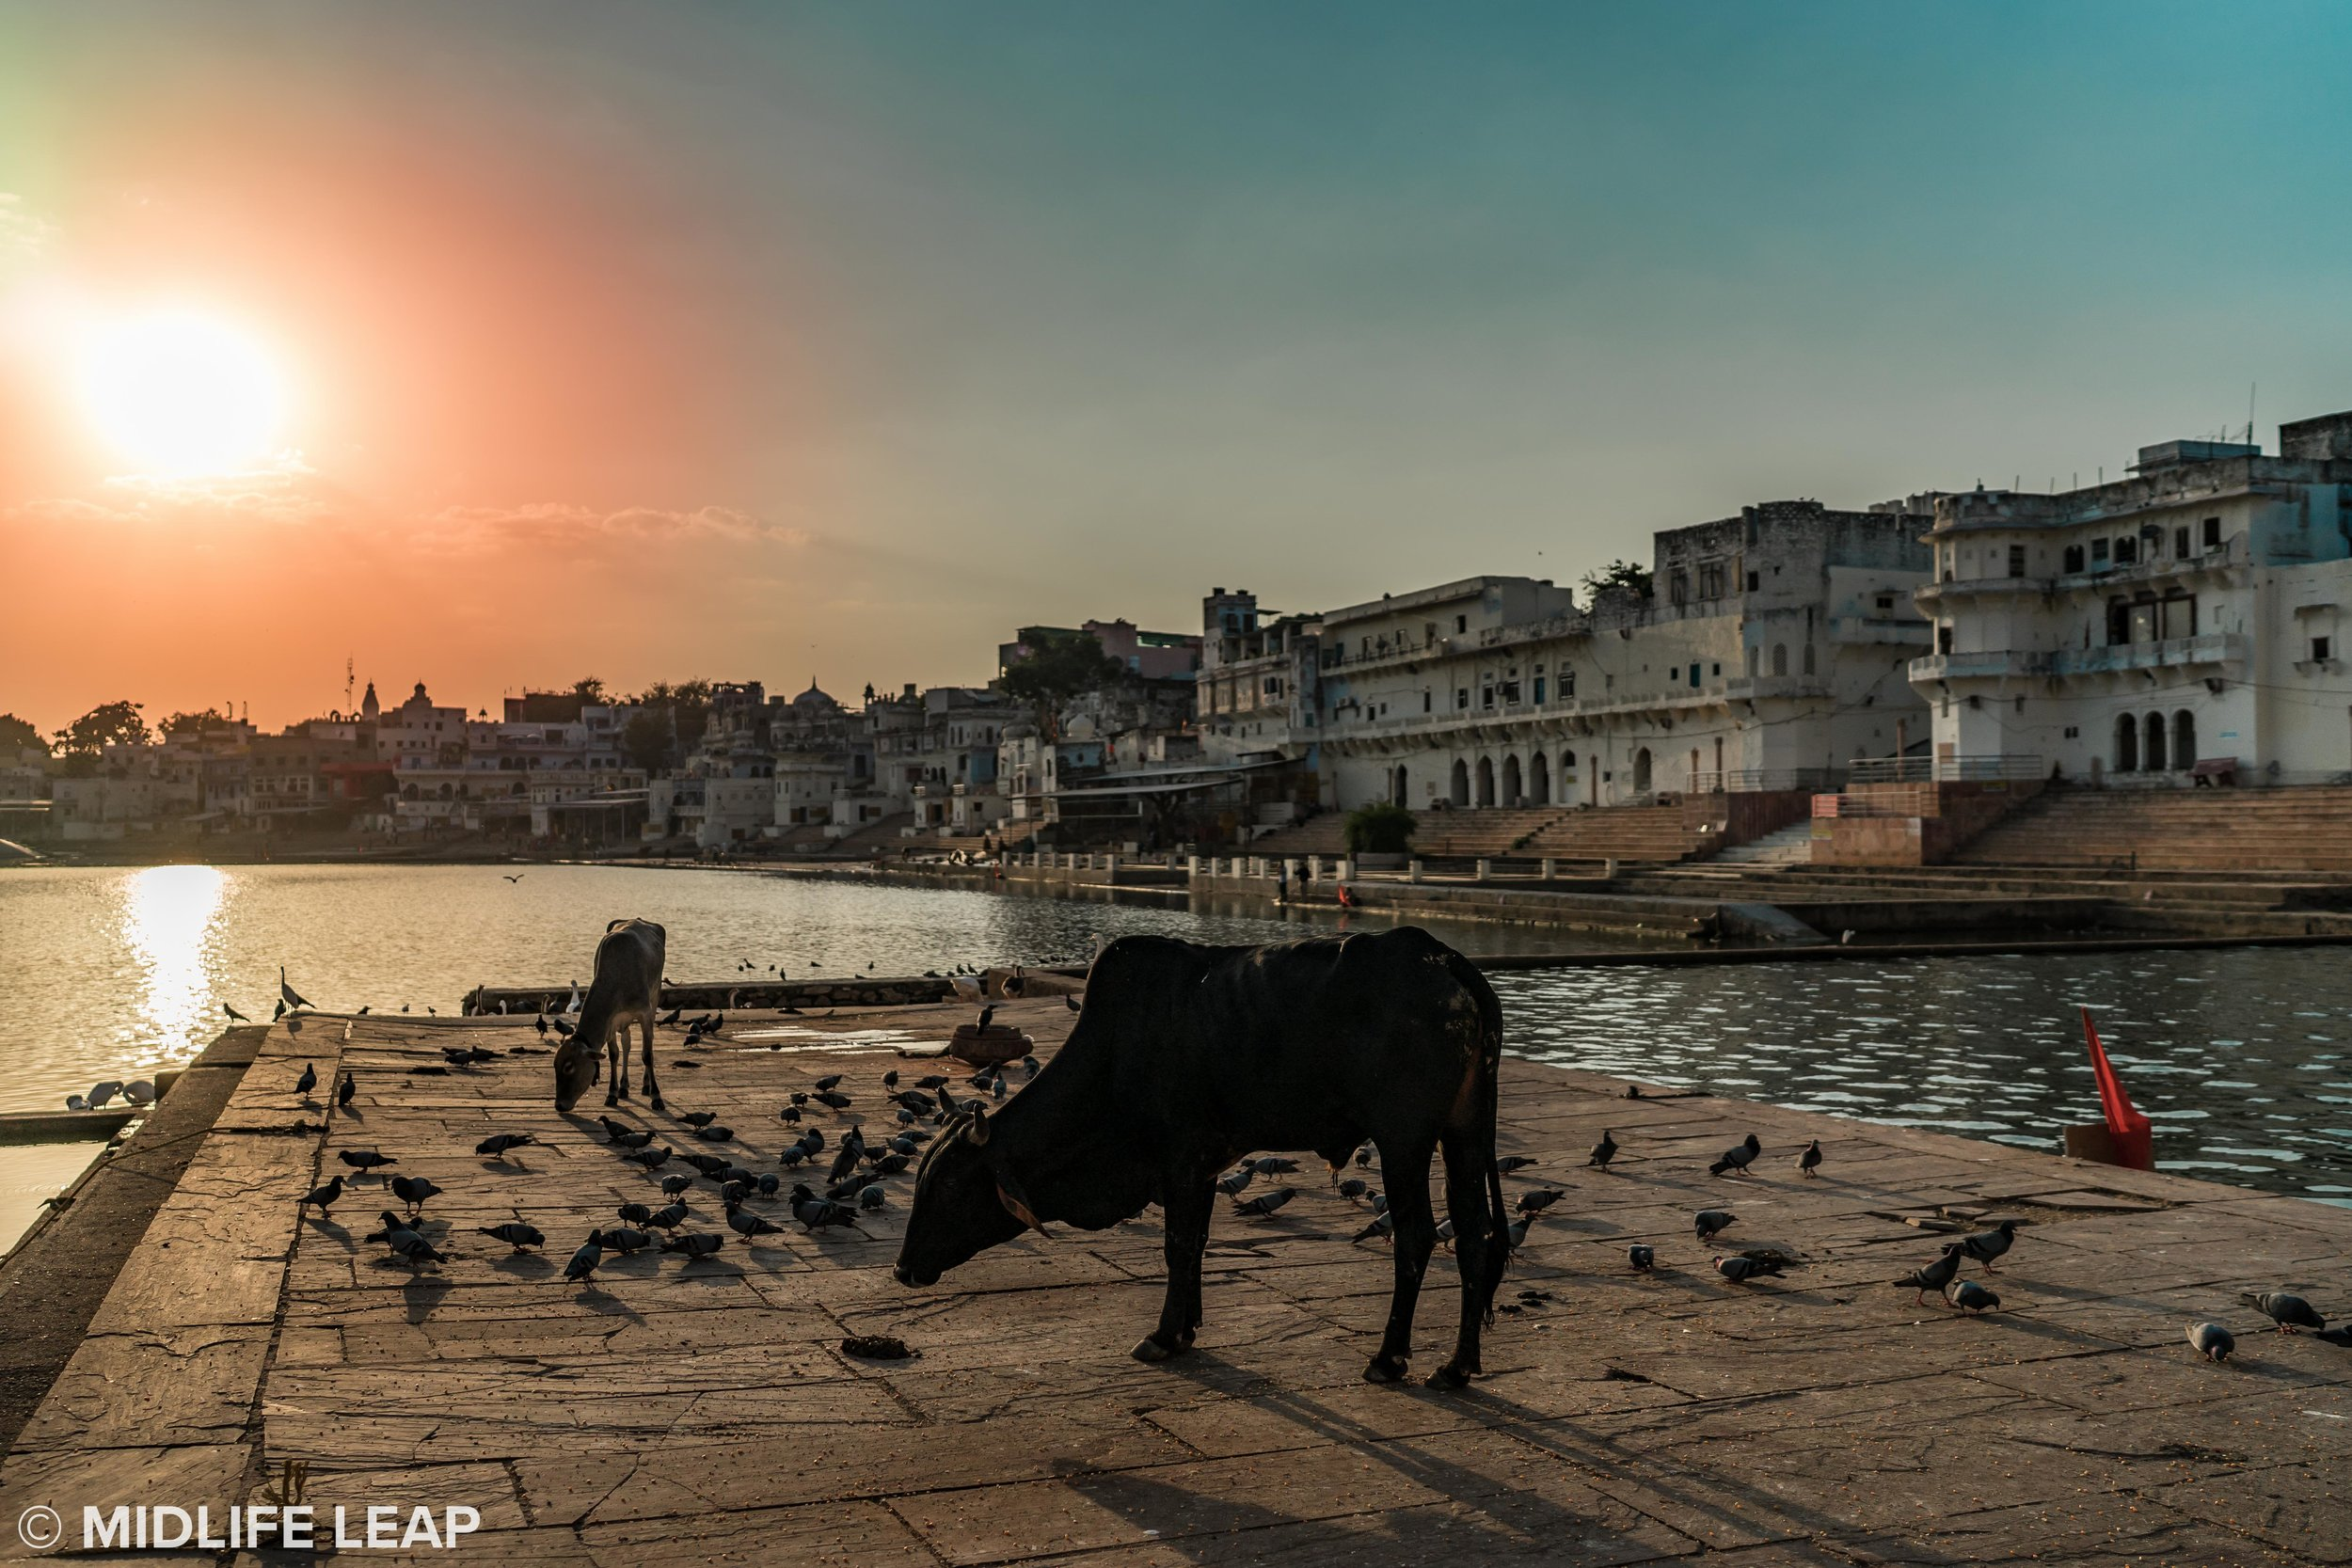 Pushkar, while a tiny city, has so much to offer, especially at sunset